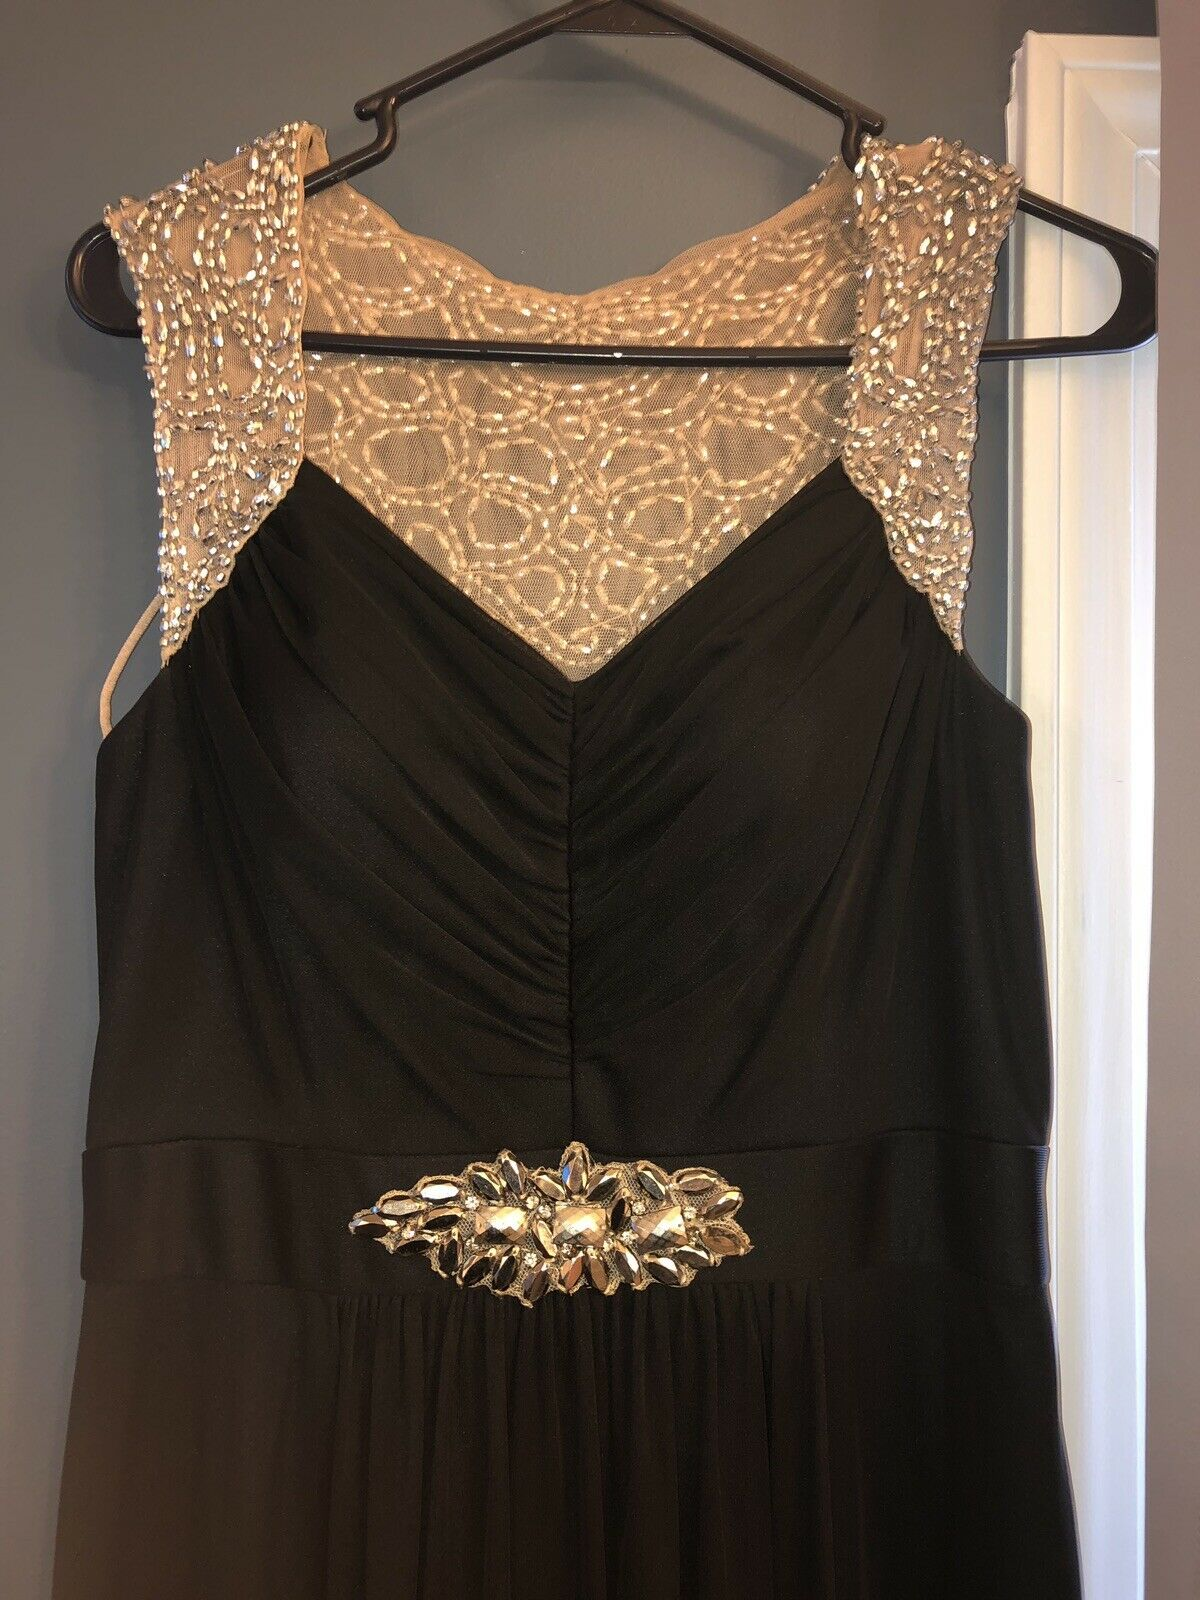 Betsy & Adam Size 8 Evening Dress with very nice beading. Gently used one time.